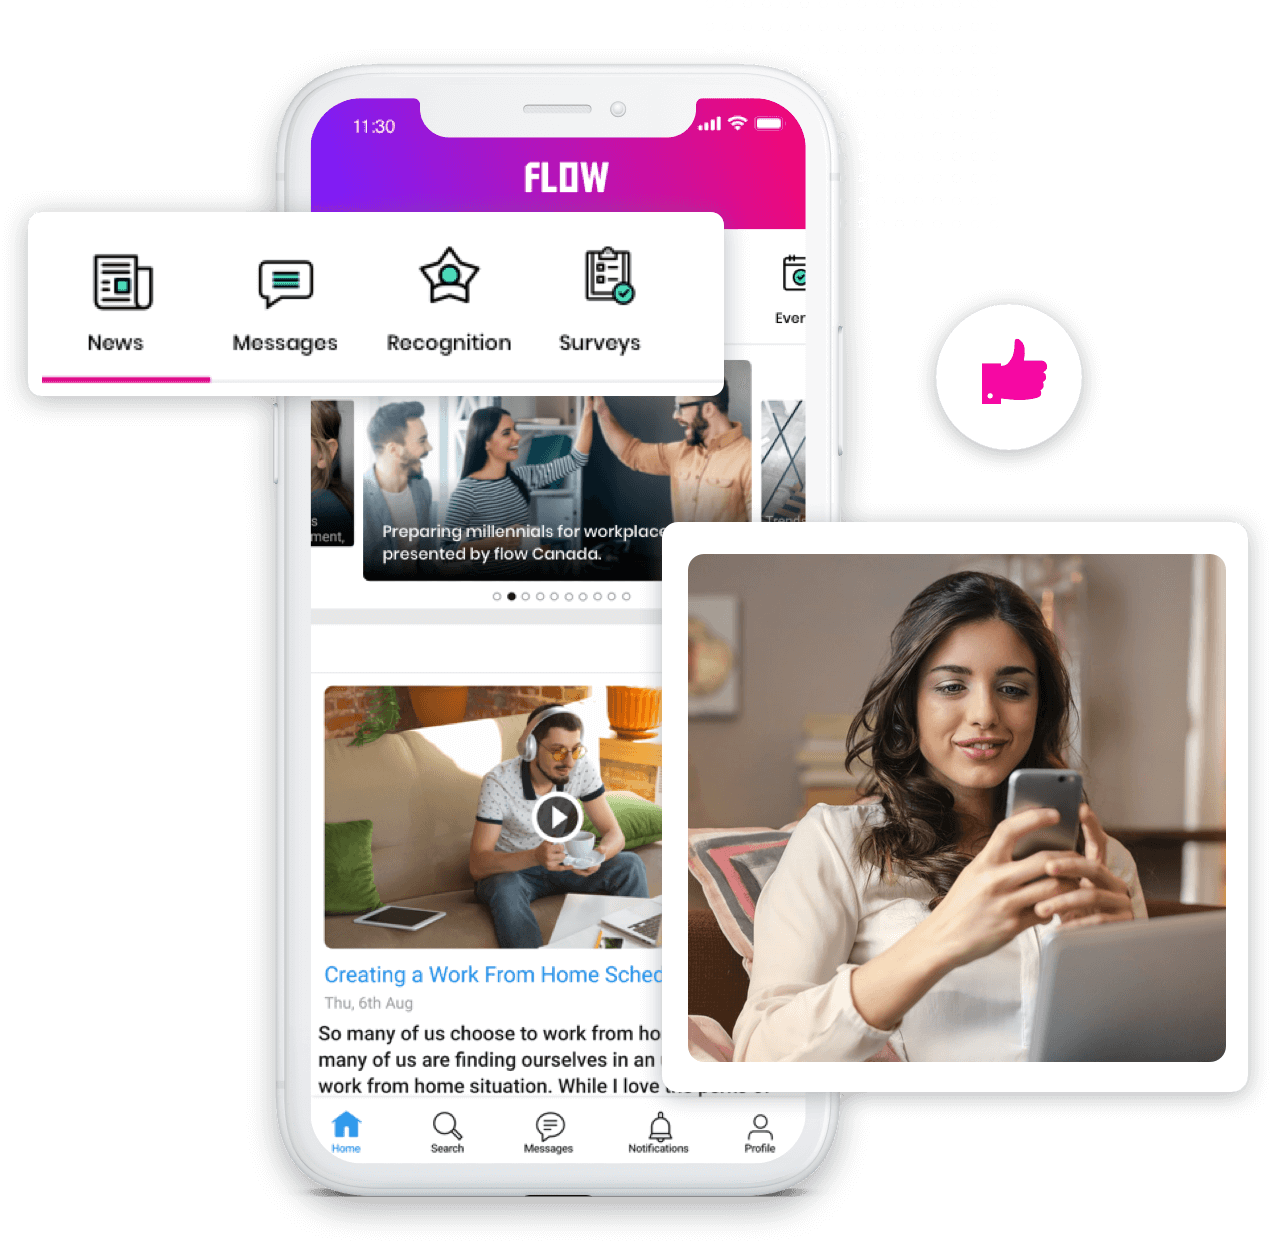 HubEngage Software - Create beautiful, powerful employee apps for iOS and Android that meet your employee communication needs while accelerating engagement fast. Reach your employees with relevant content through deep segmentation tools that makes it fun and engaging.